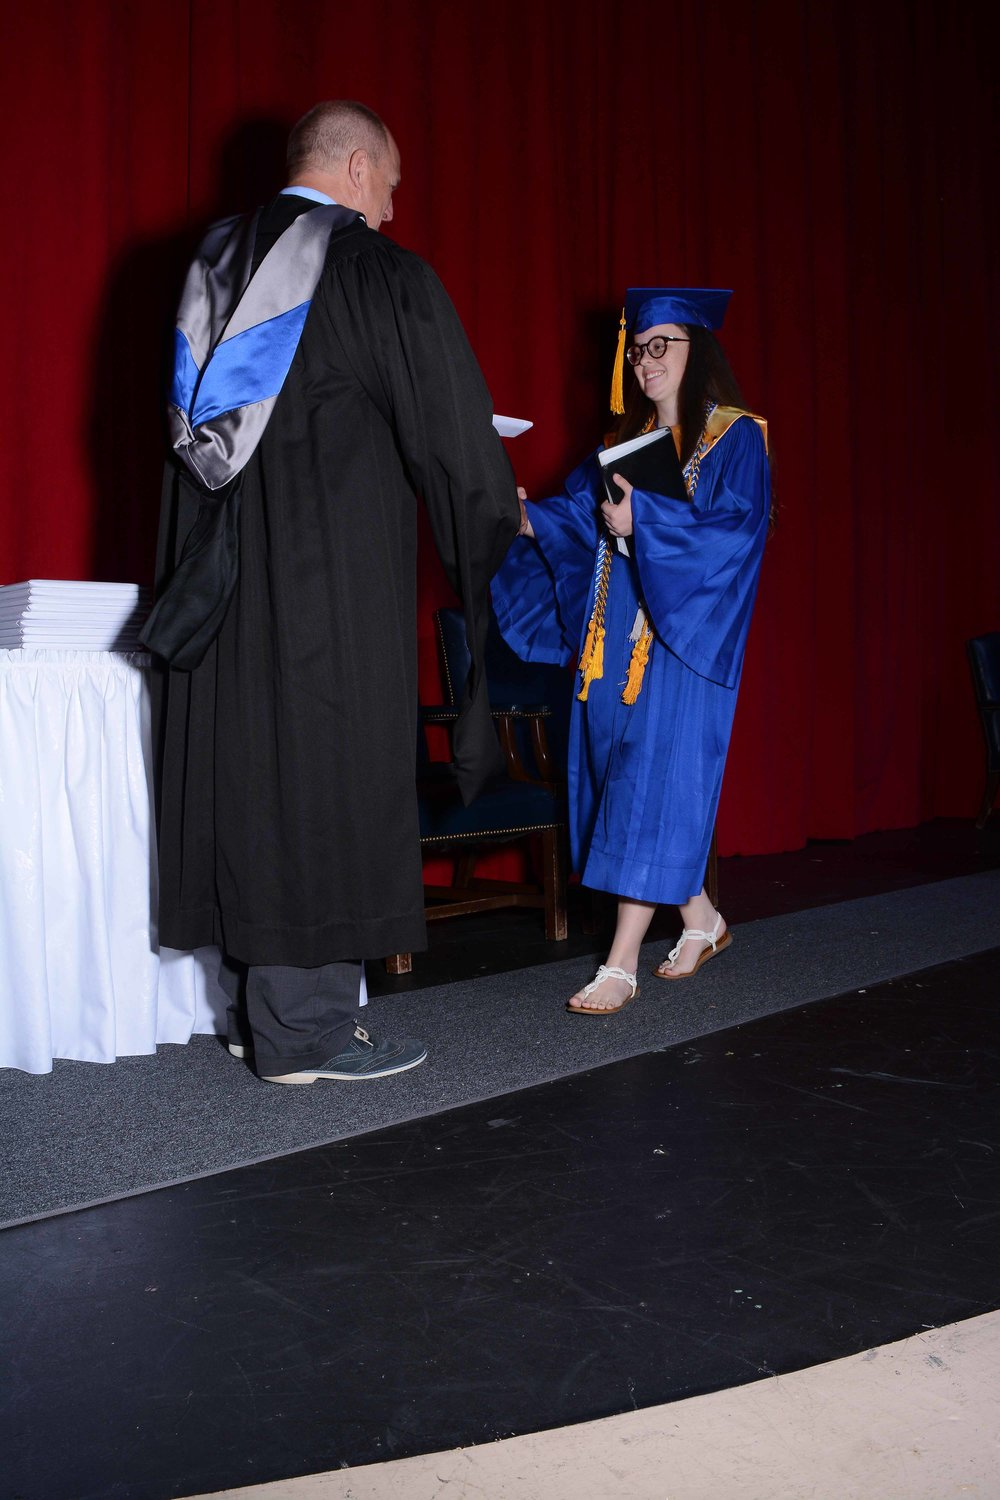 May14 Commencement15.jpg